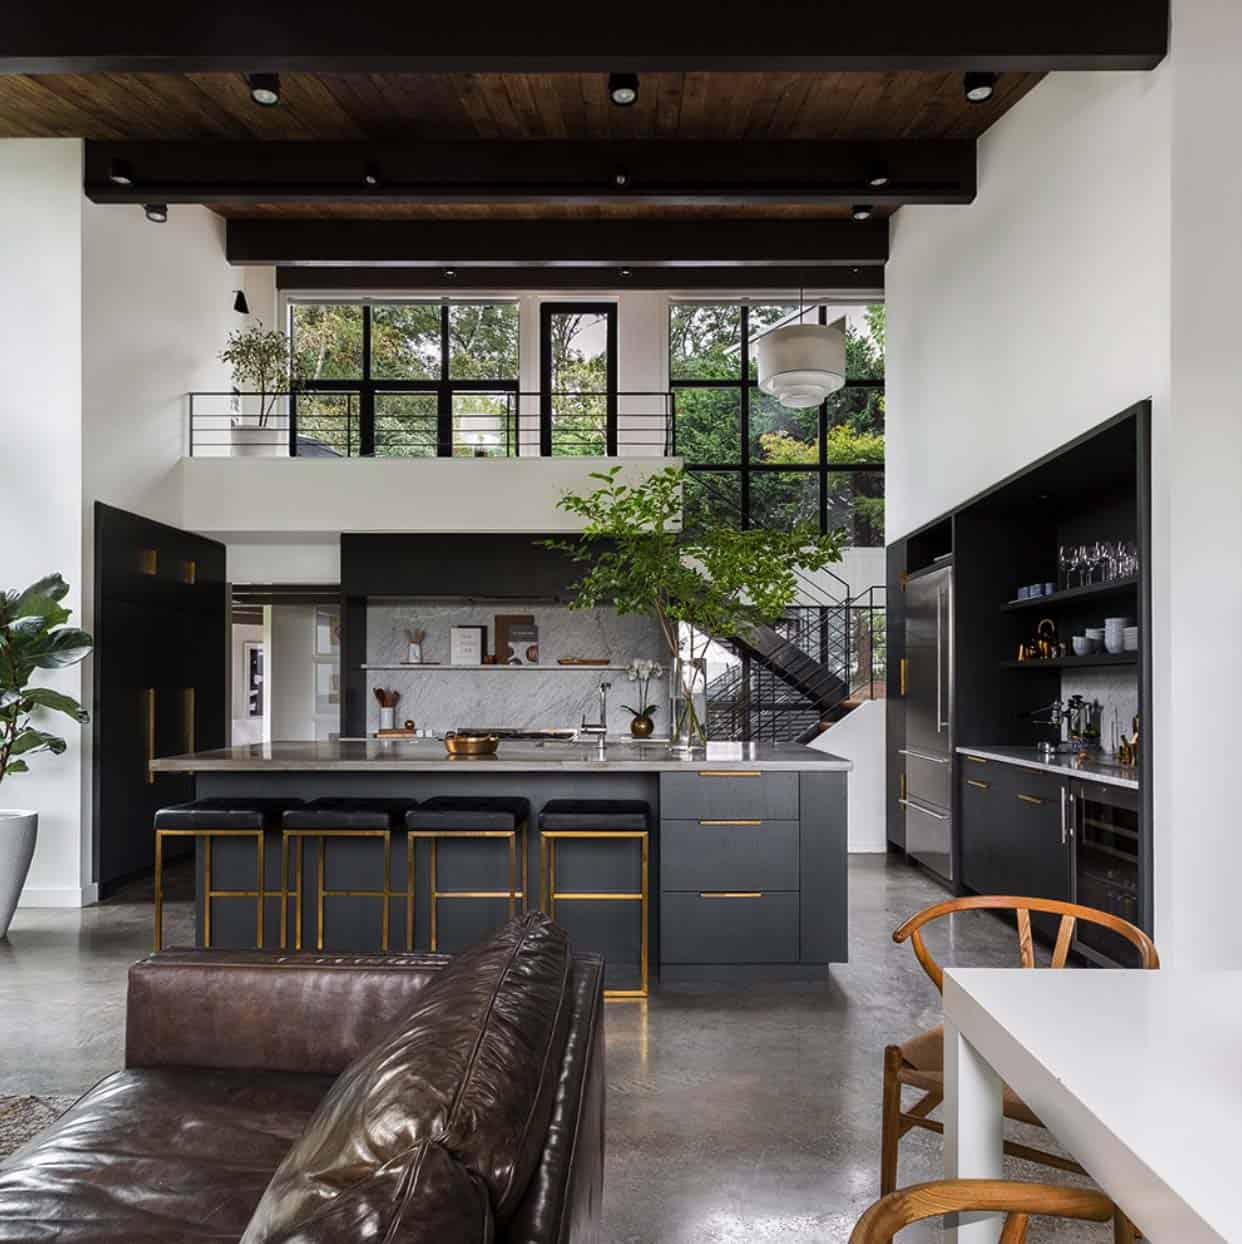 Kitchen Backsplash Mid Century Modern: Chic Midcentury Modern Renovation Surrounded By Woods In